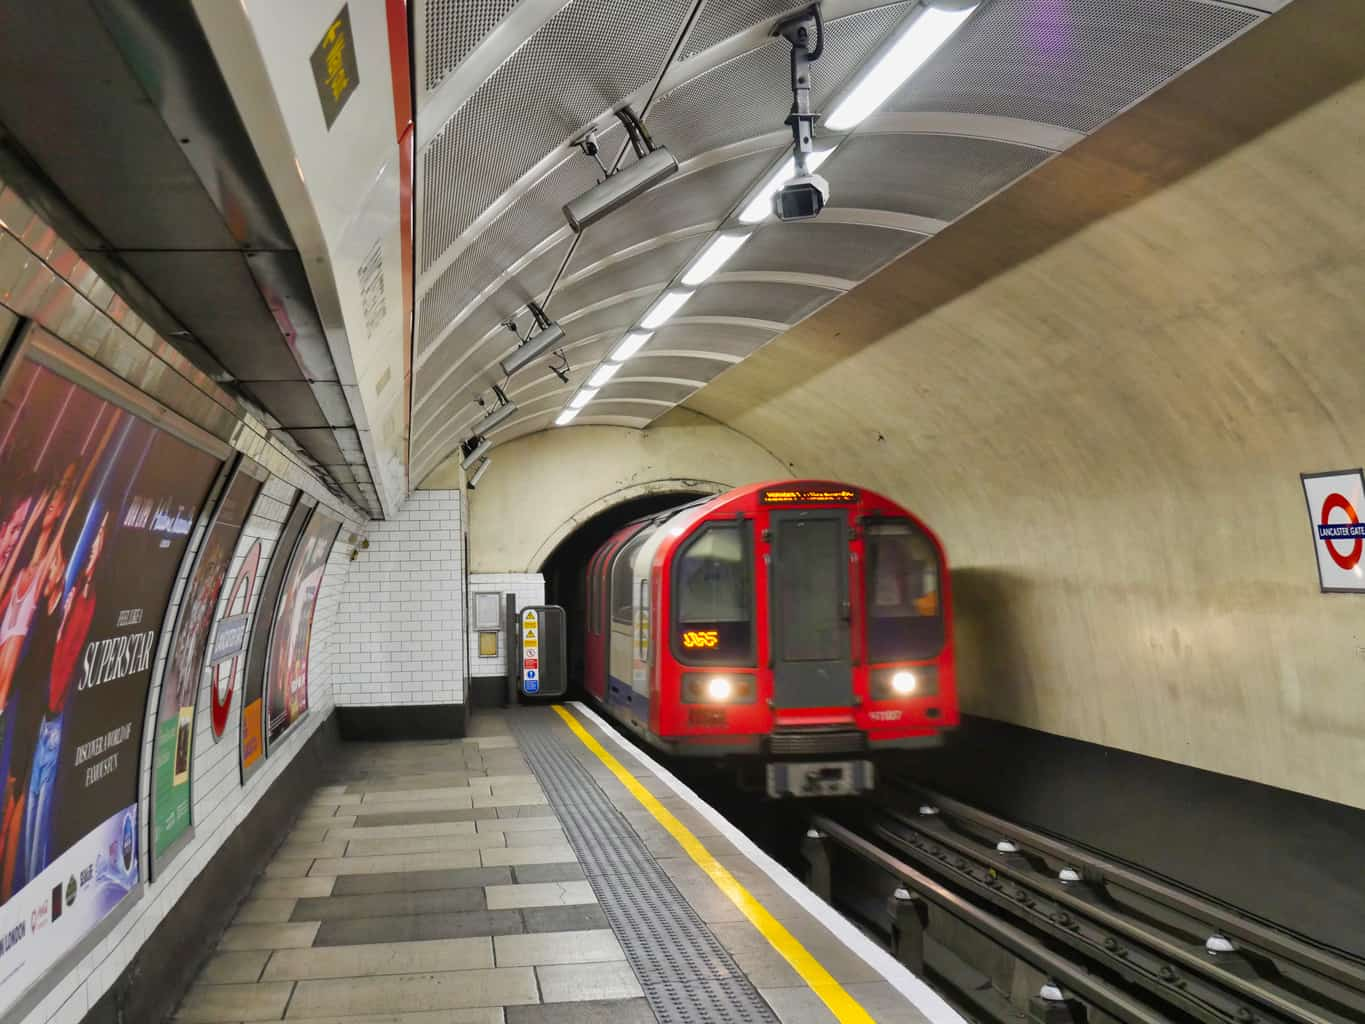 A train pulling in to a London Underground station